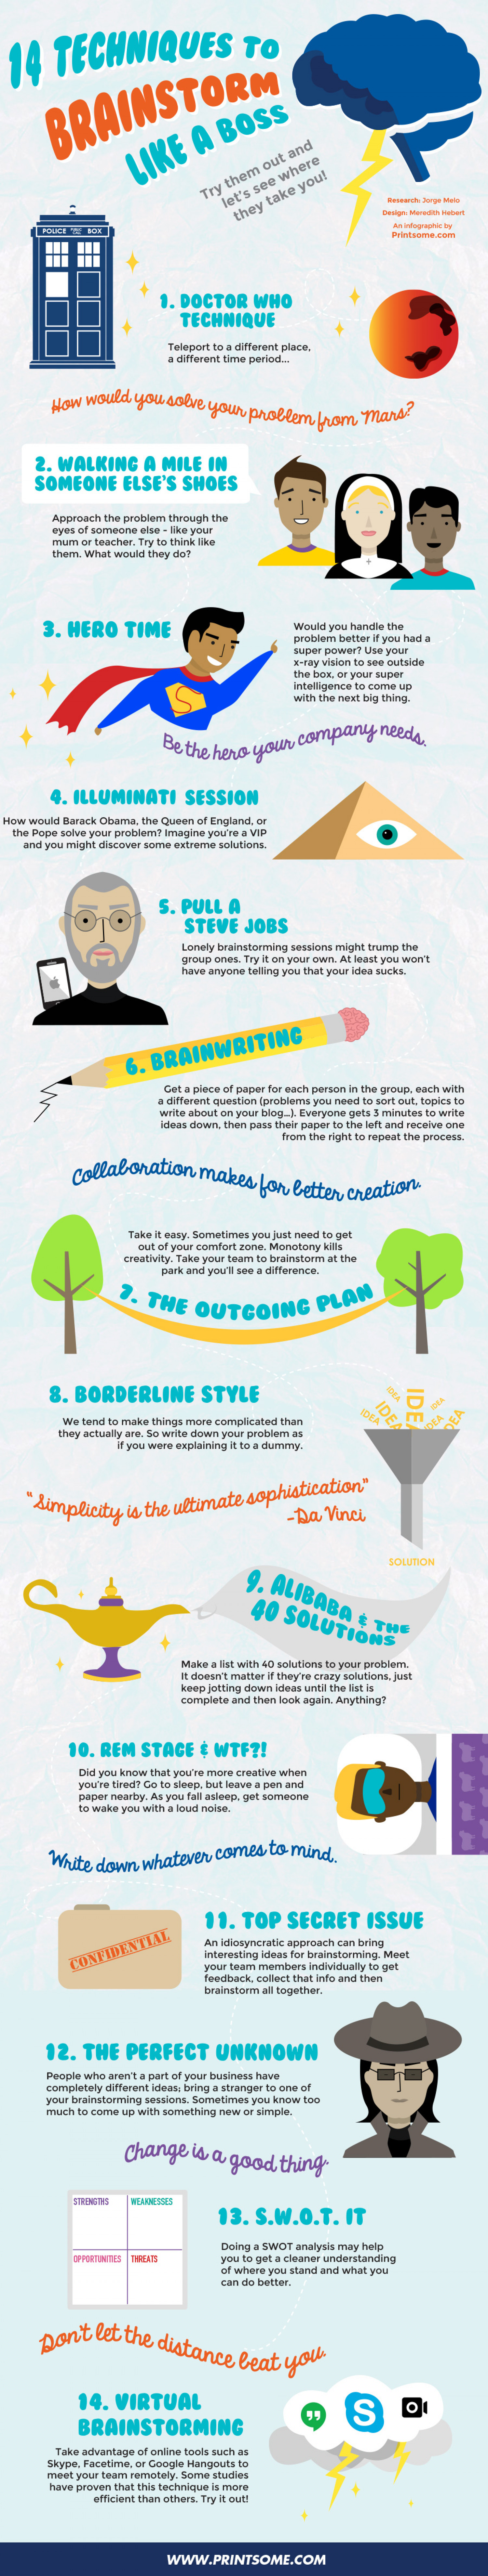 14 Techniques to Brainstorm Like a God & Infographic! Infographic